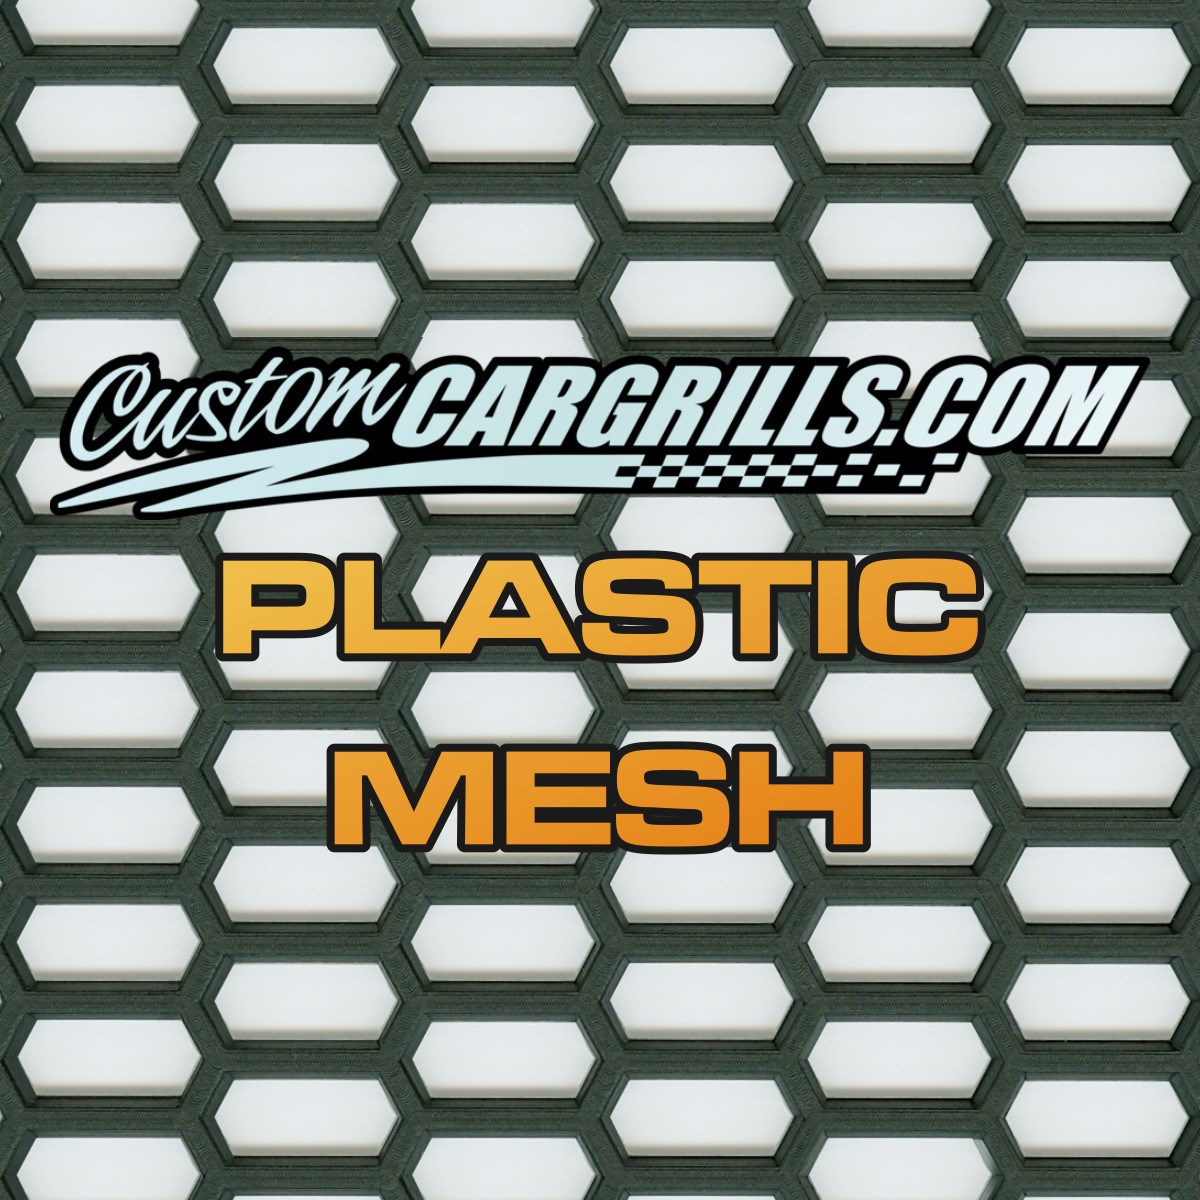 Plastic Grill Mesh Sheets by customcargrills